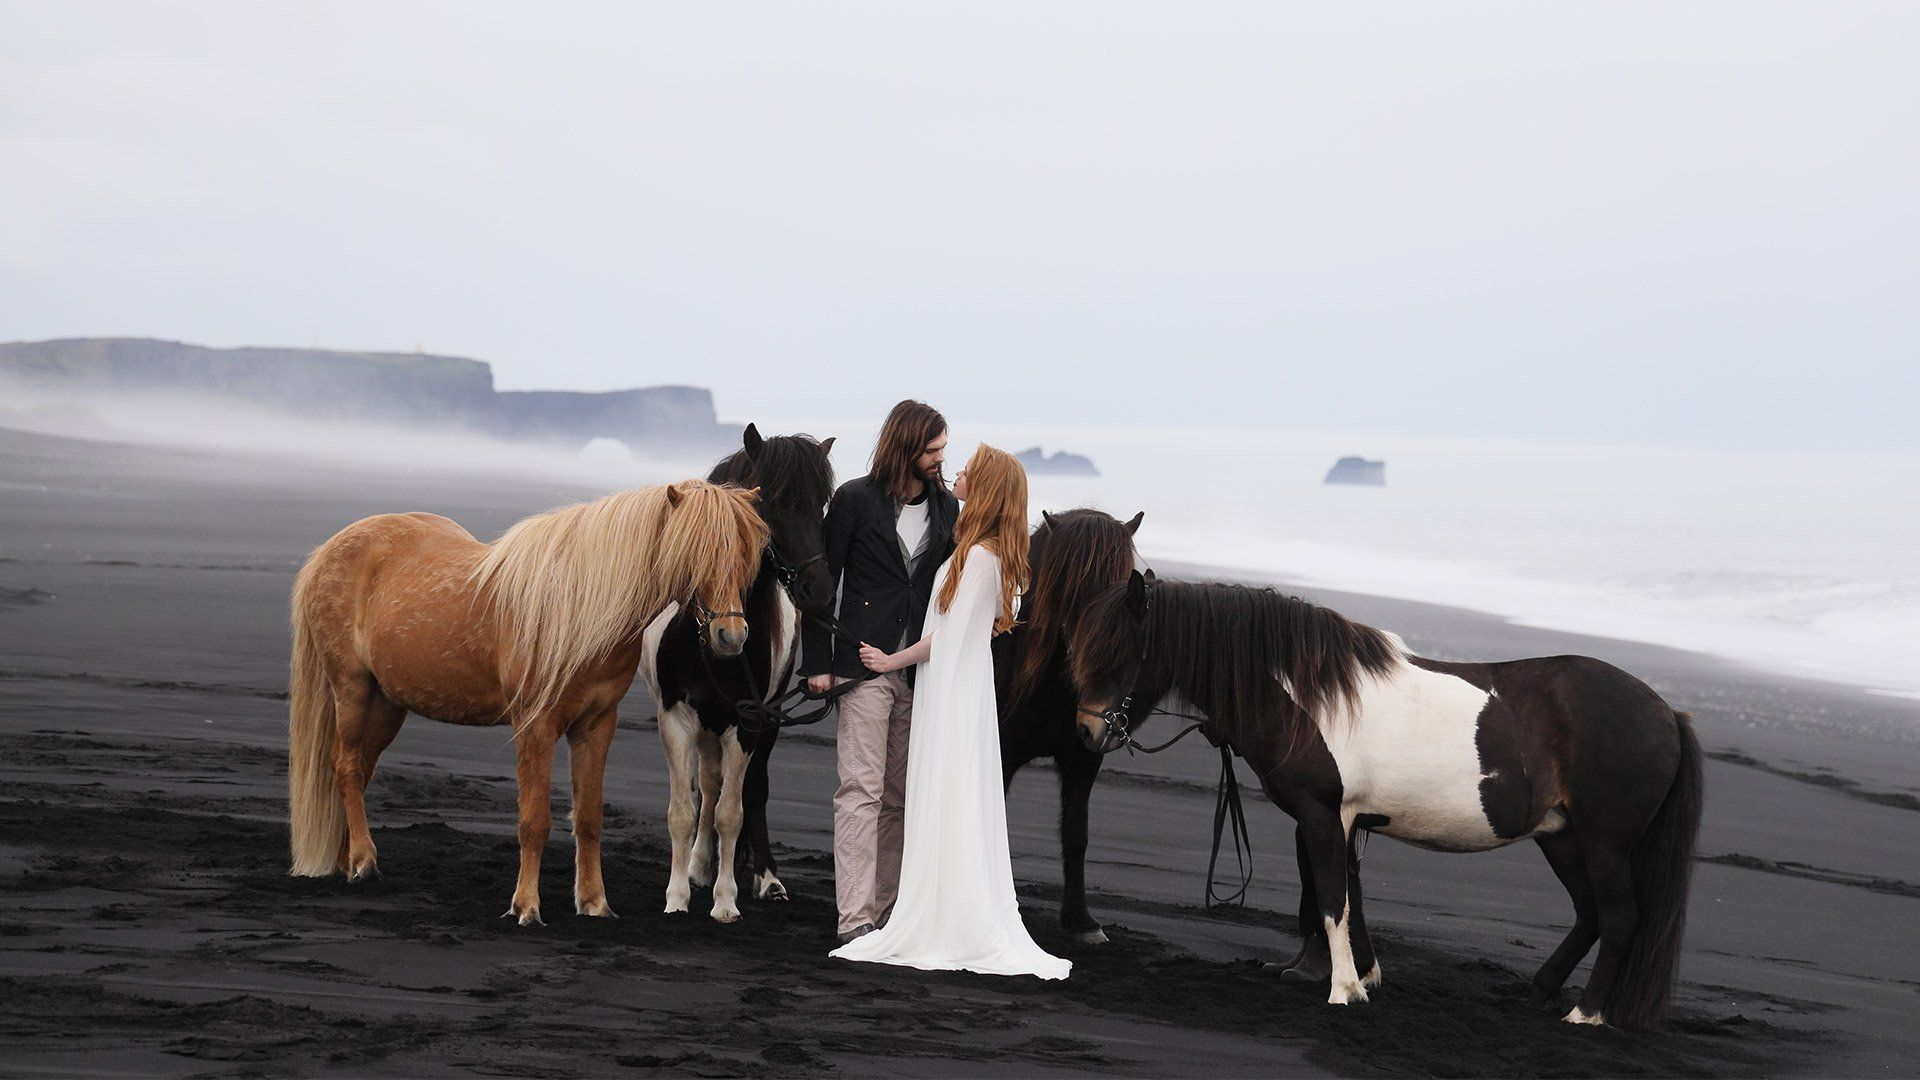 A couple eloping in Iceland on a beach with horses shot on the Canon EOS R and RF 24-105mm F4L IS USM